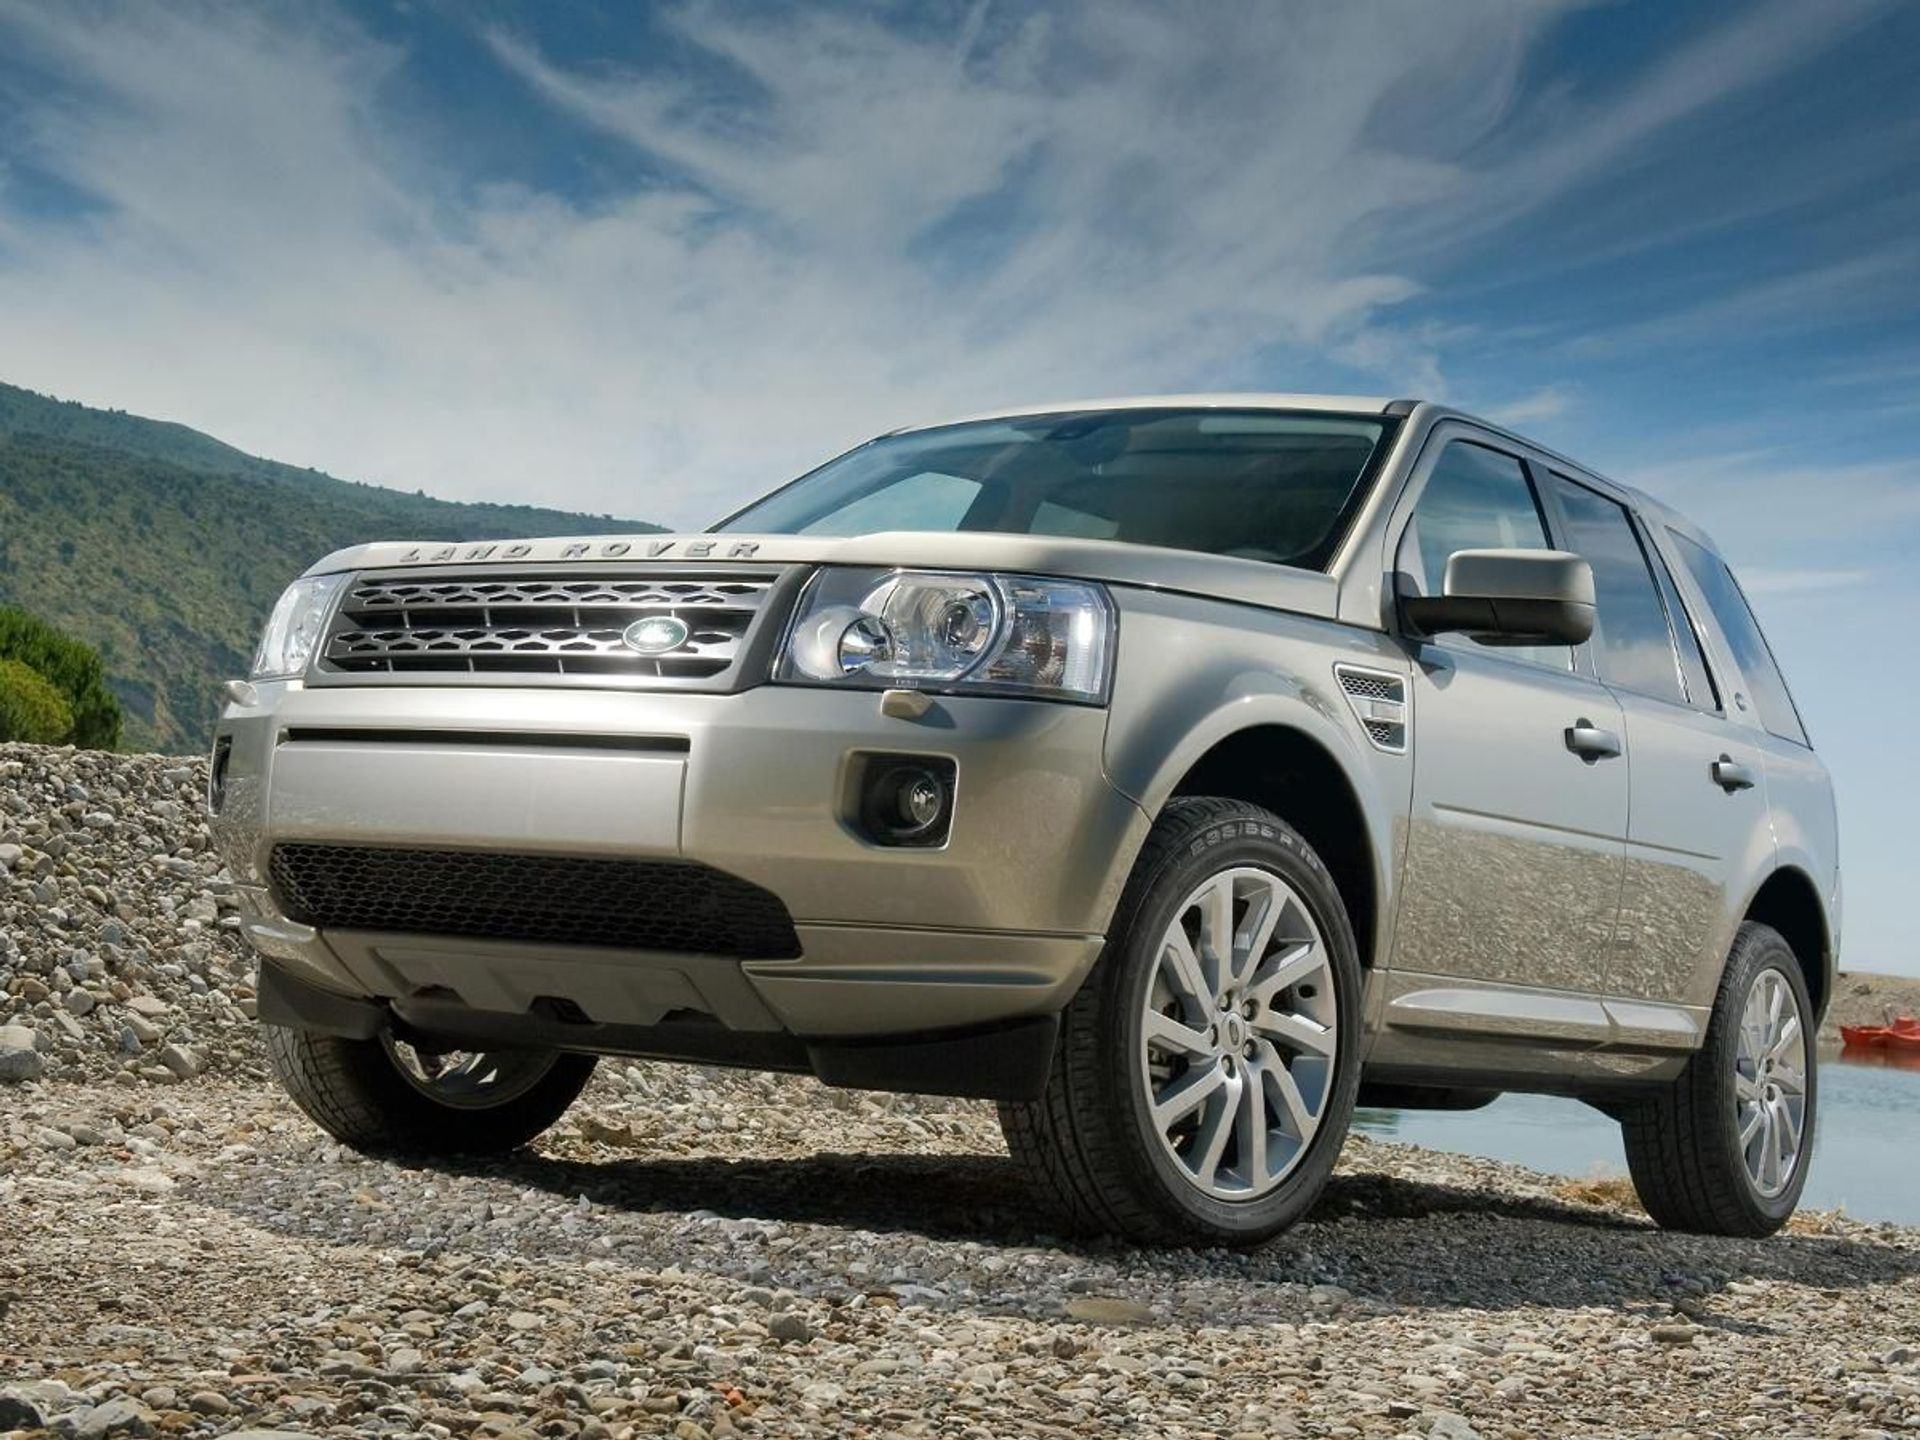 Land Rover Freelander 2 SD4 image